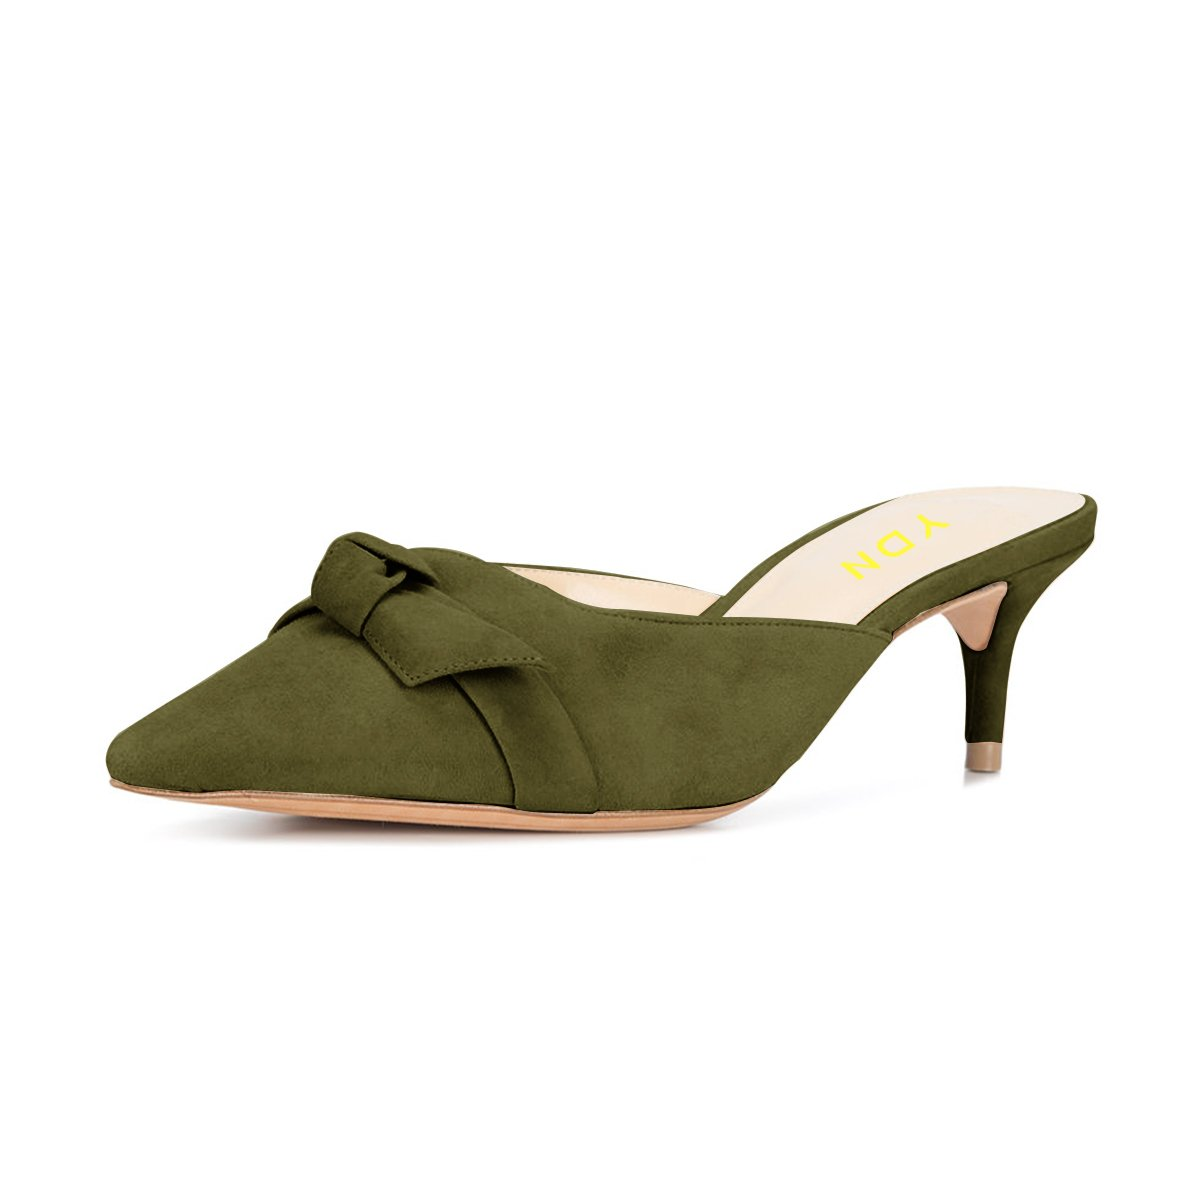 YDN Womens Low Heels Slide Sandals Pointed Toe Kitten Mules Slip on Pumps with Chic Bow Olive 15